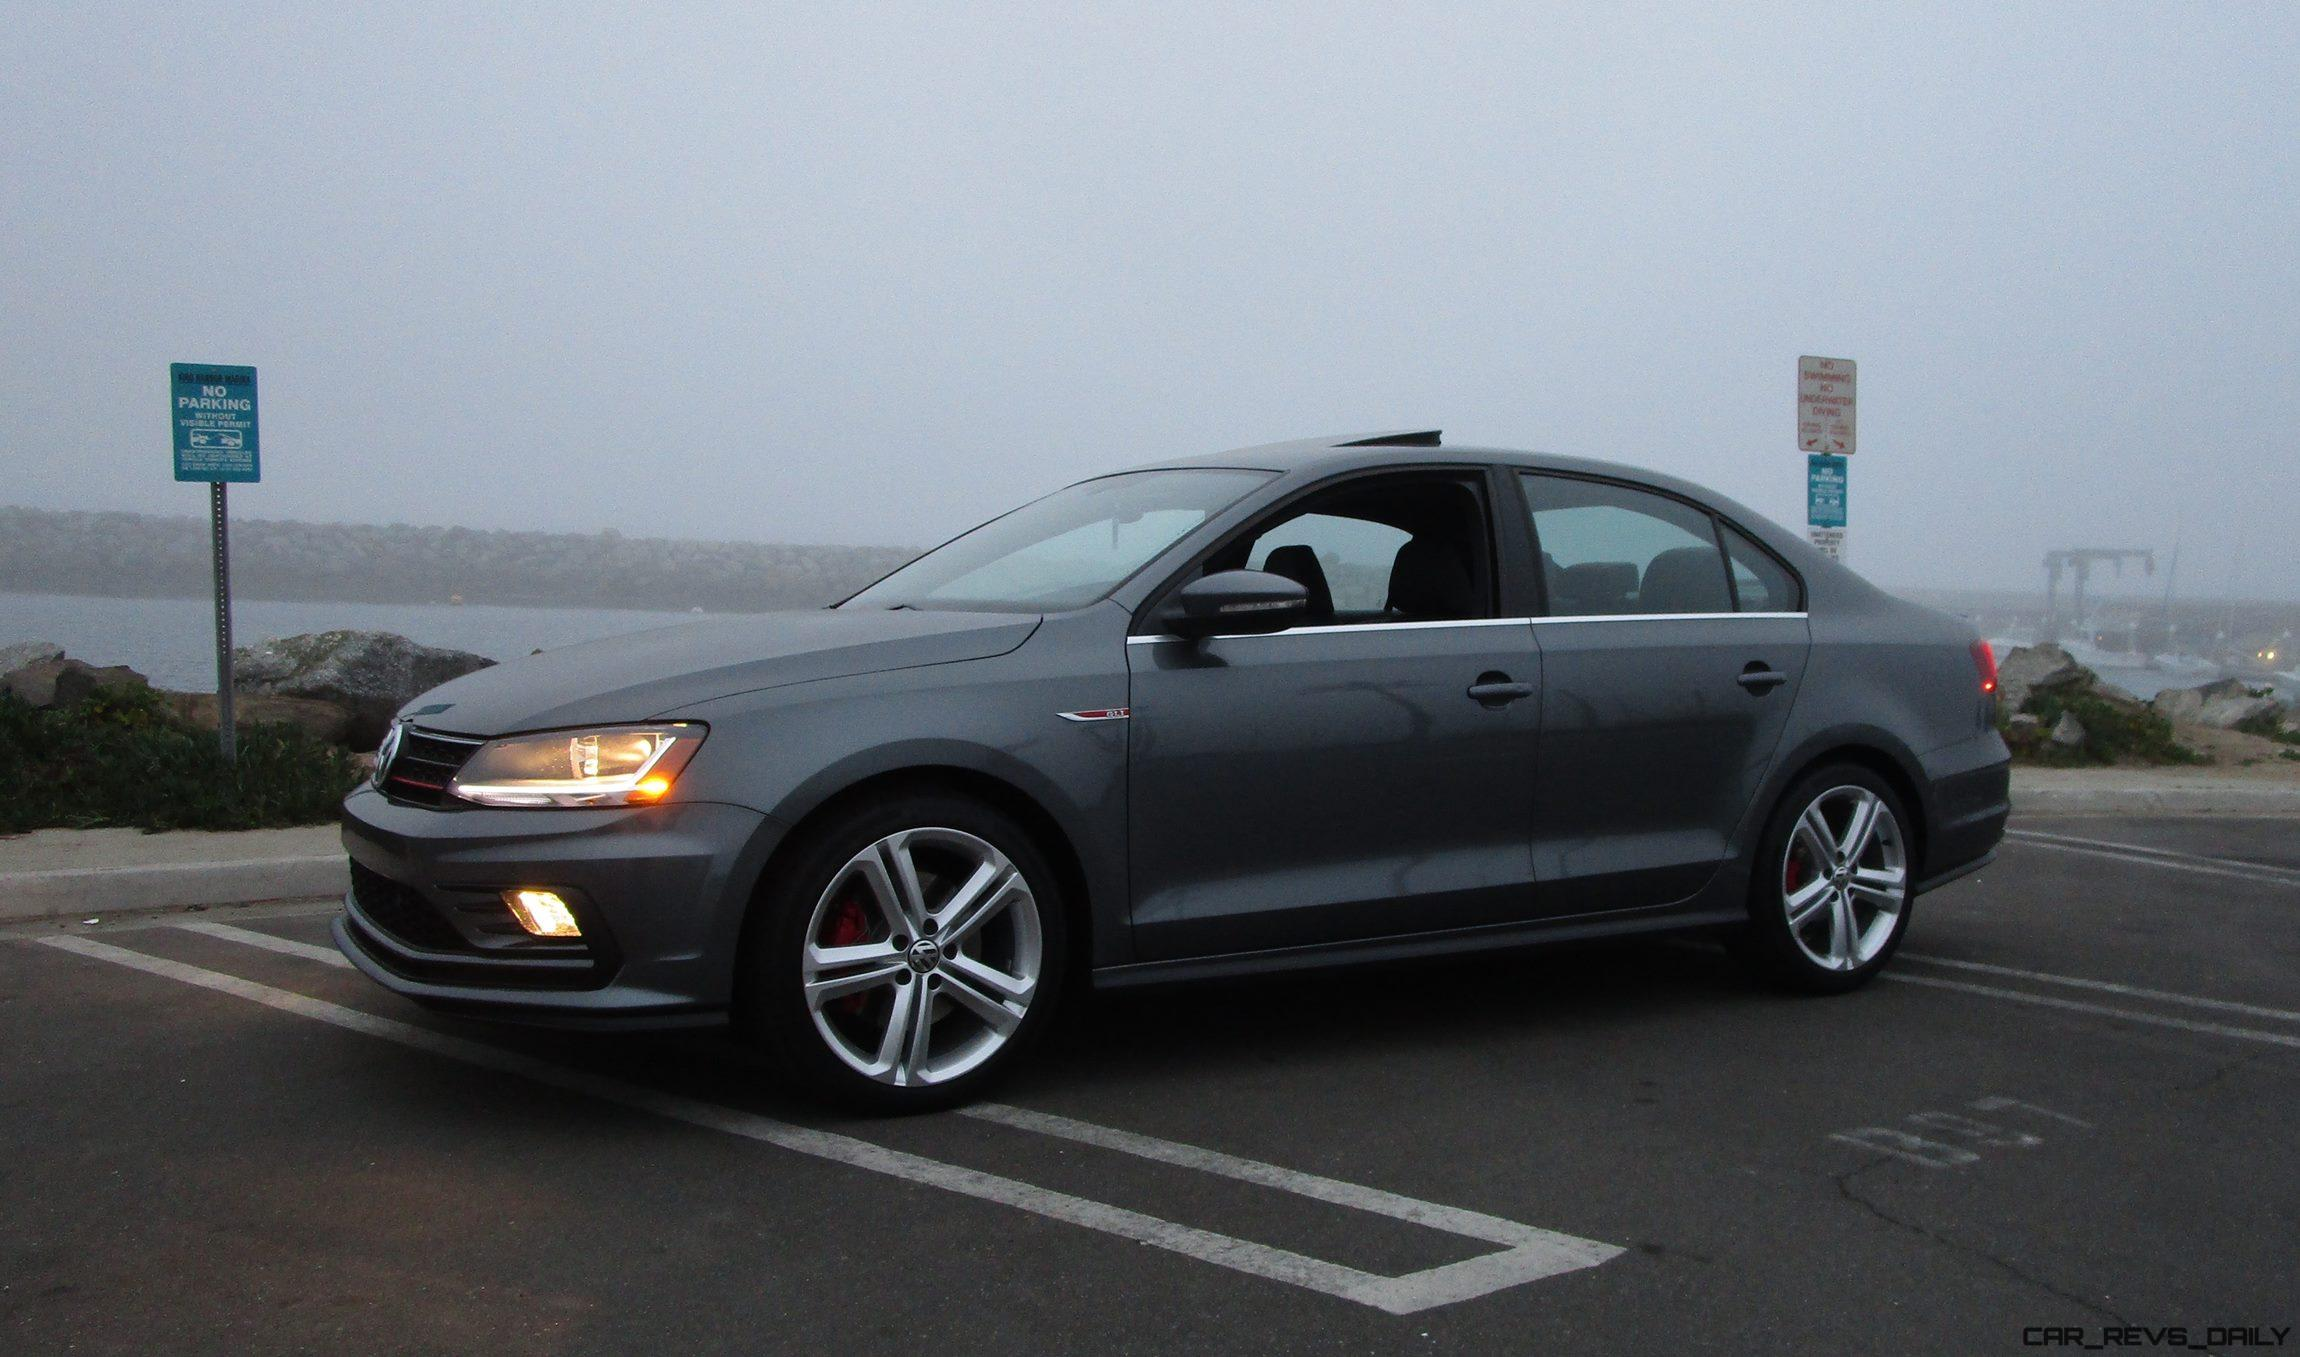 2017 VW Jetta GLI 2.0T 6MT - Road Test Review - By Ben Lewis